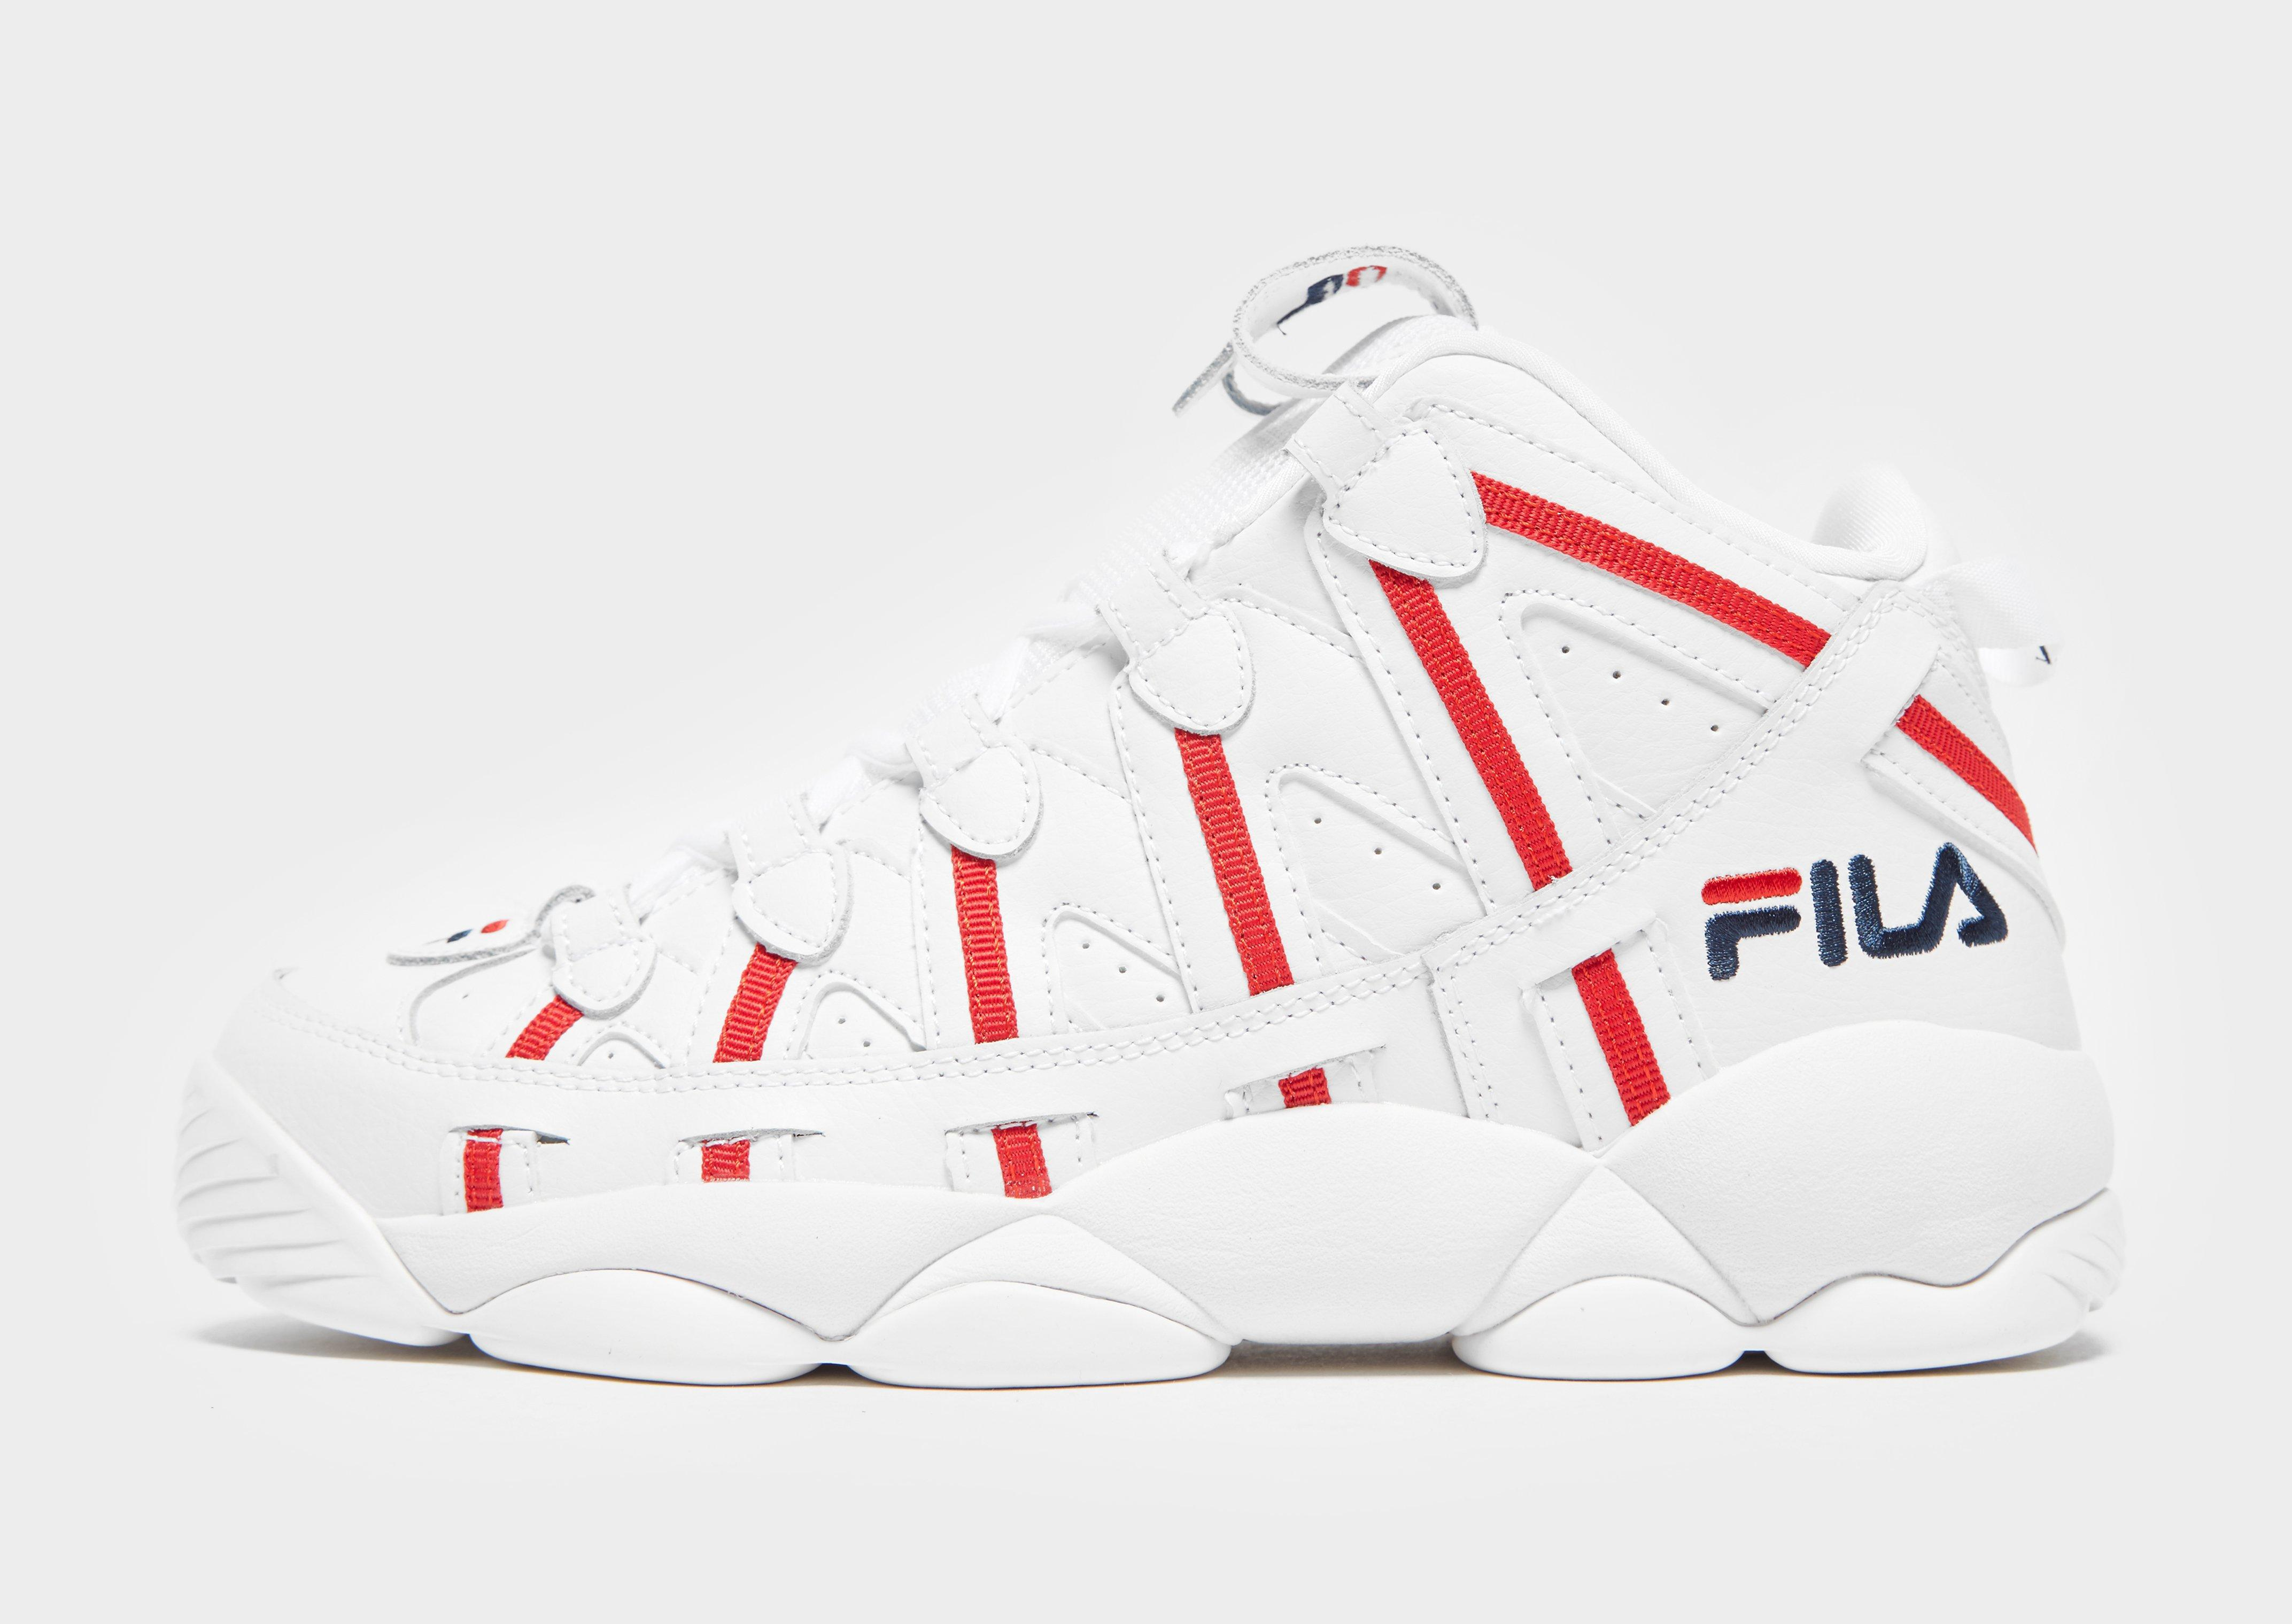 Fila Synthetic Spaghetti in White/Red (White) for Men - Lyst